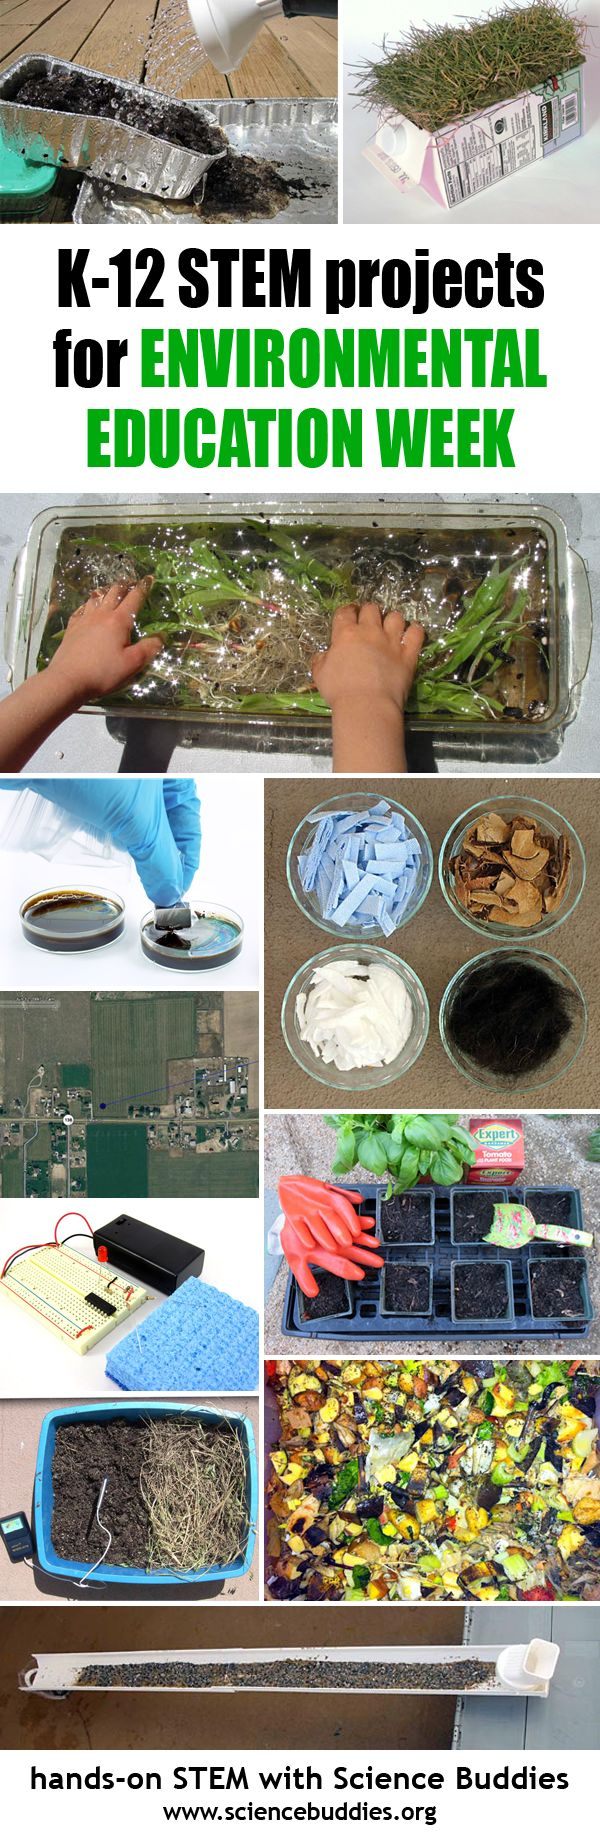 best ideas about environmental science hands on environmental education stem project roundup from science buddies for environmental education week